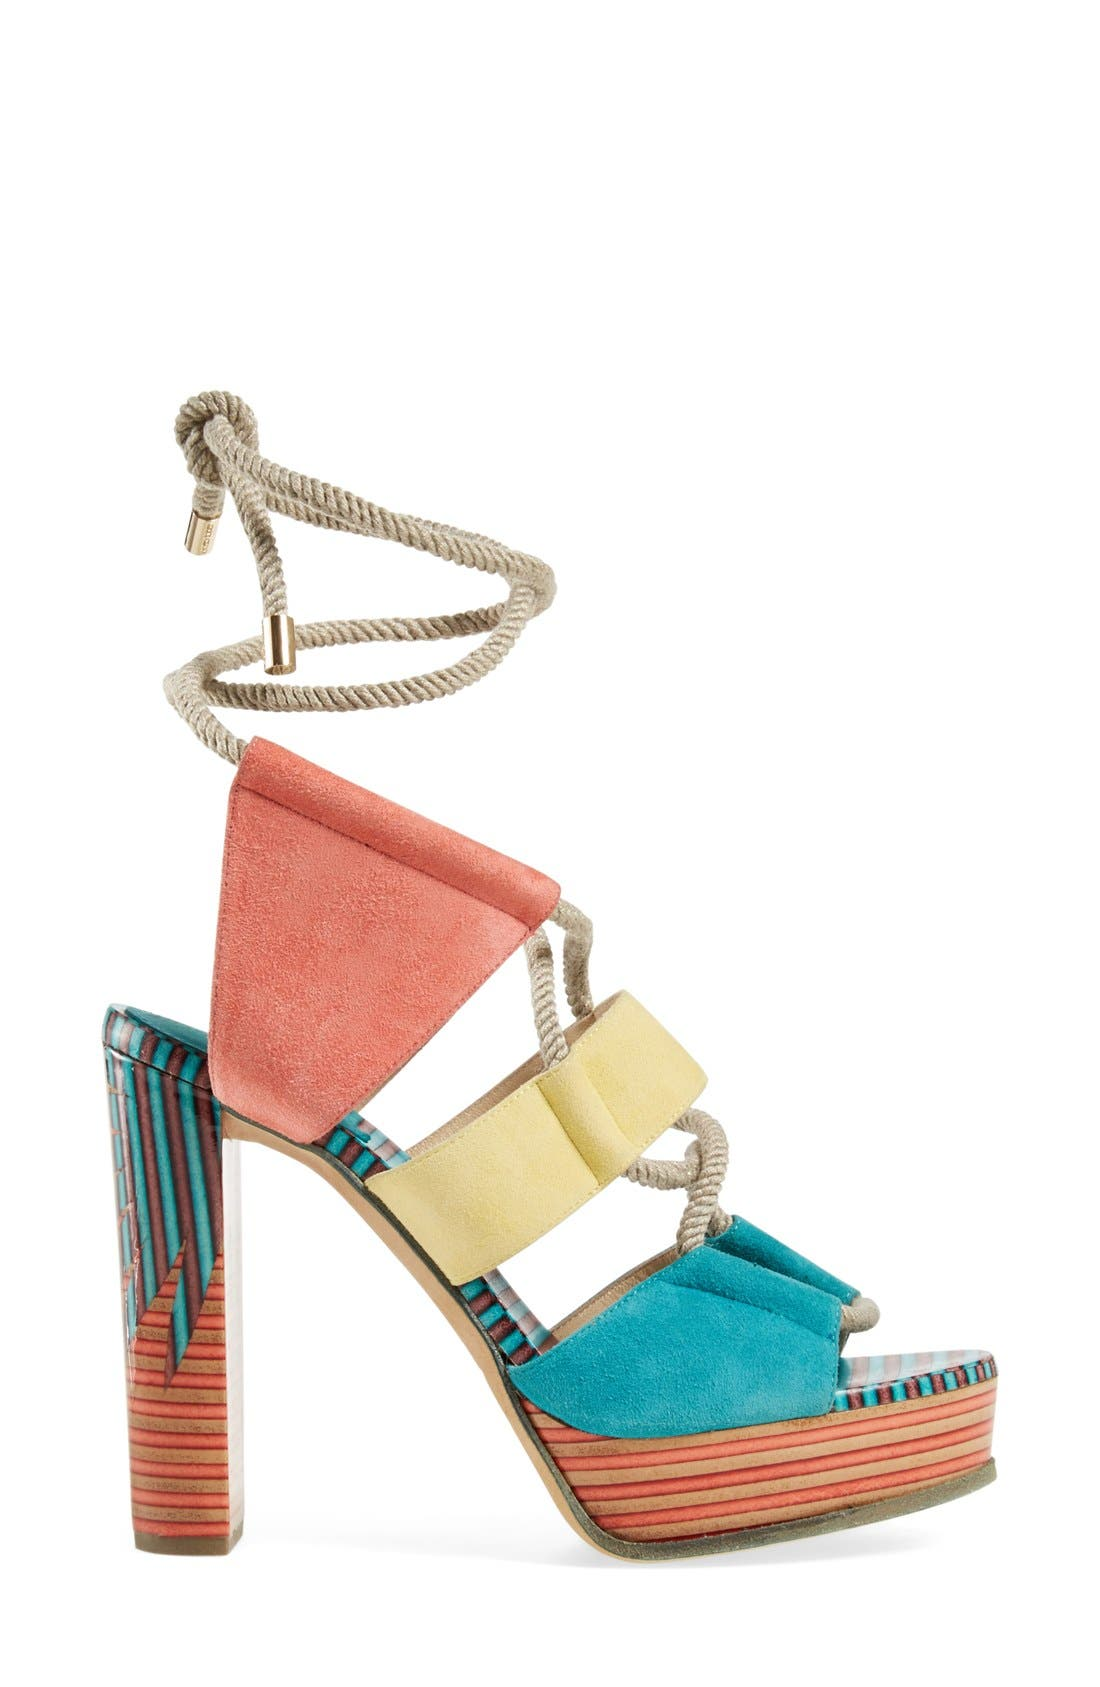 JIMMY CHOO, 'Halley' Platform Sandal, Alternate thumbnail 2, color, 400